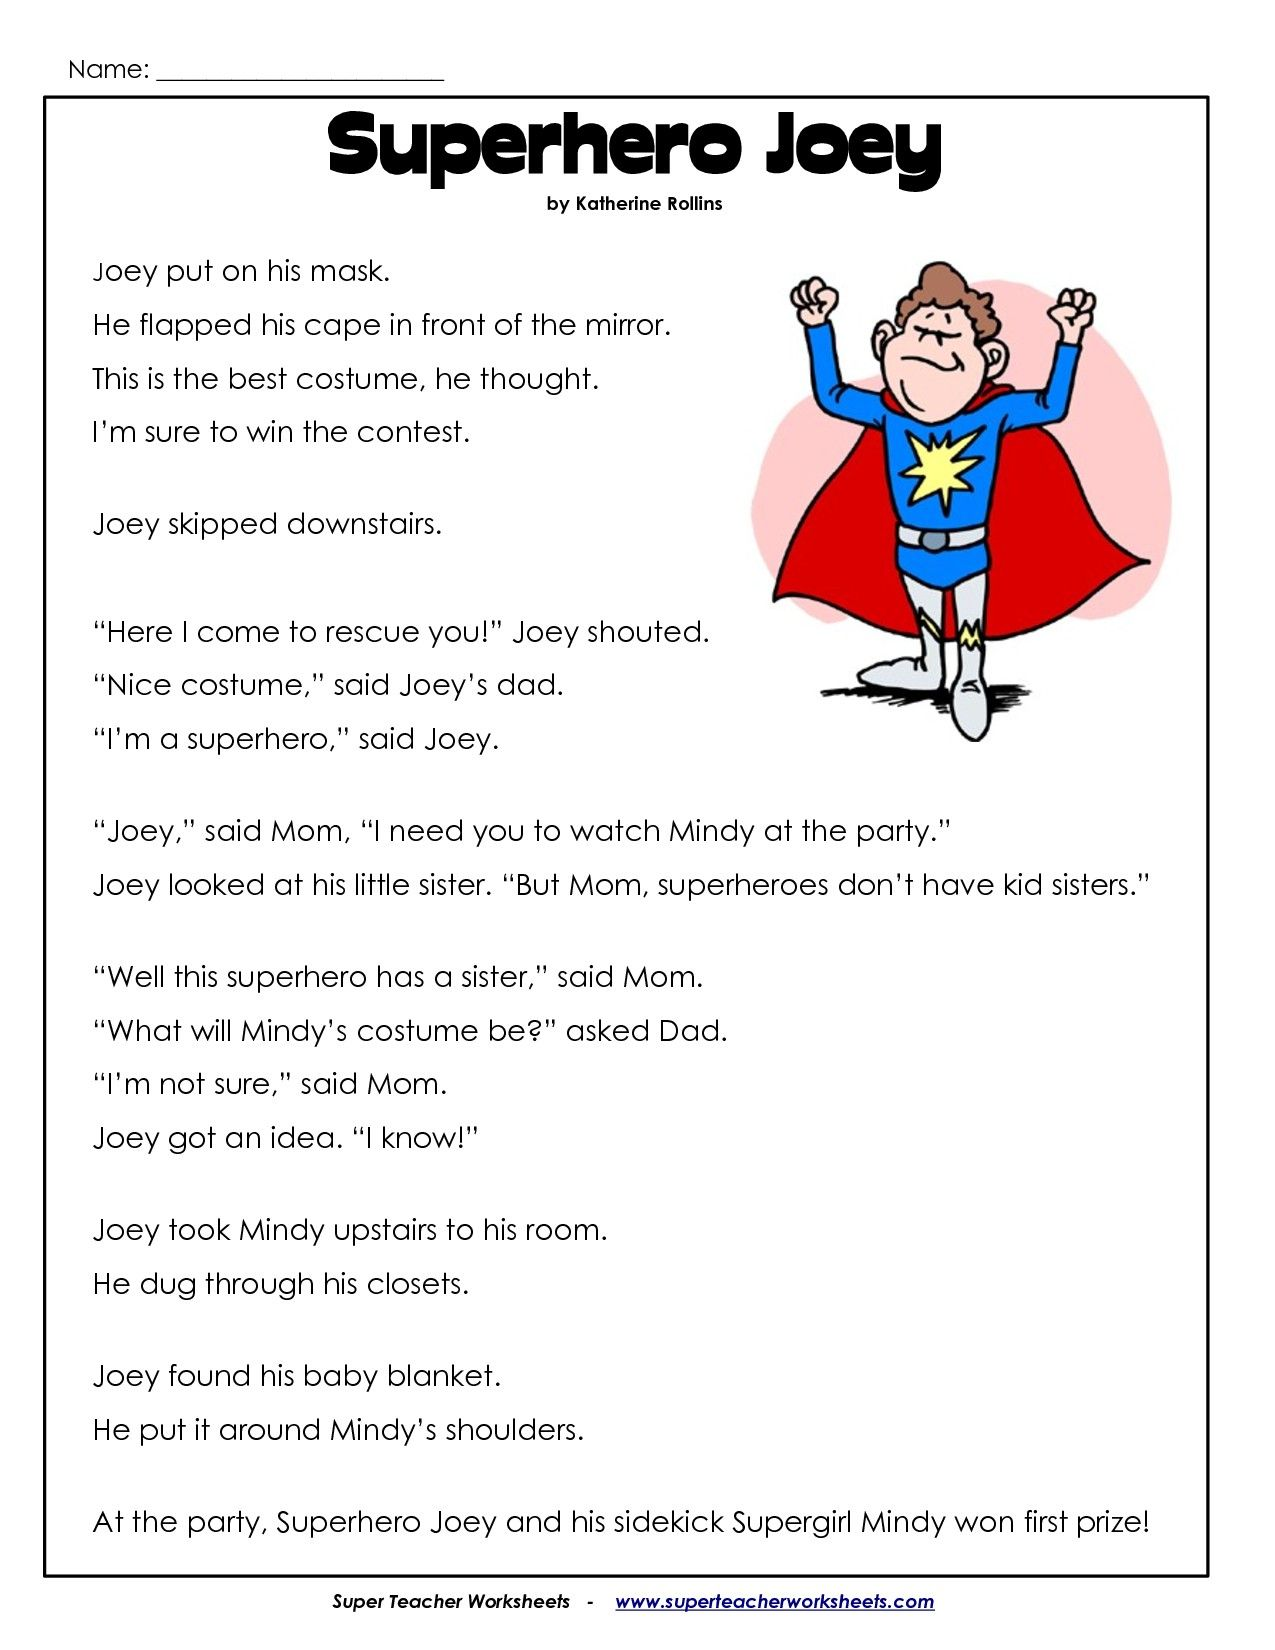 Worksheet Free Second Grade Reading Comprehension Worksheets 1000 images about kaleb reading on pinterest simple stories comprehension and ice skating